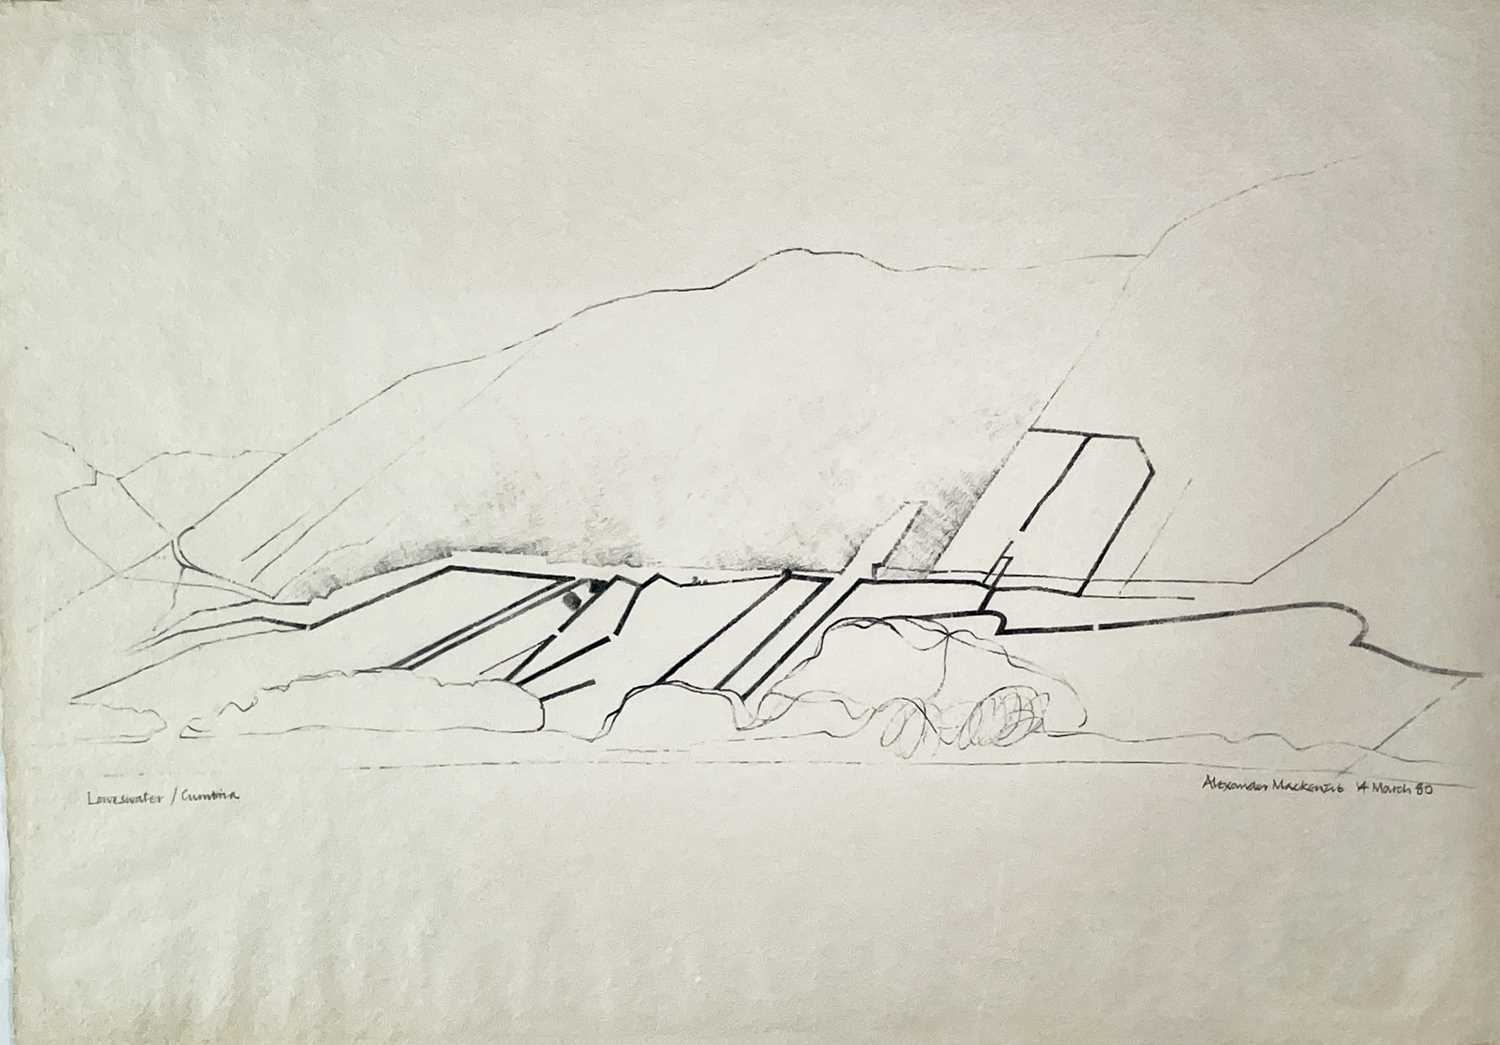 Alexander MACKENZIE (1923-2002) Loweswater, Cumbria Pencil drawing Signed, inscribed and dated 14